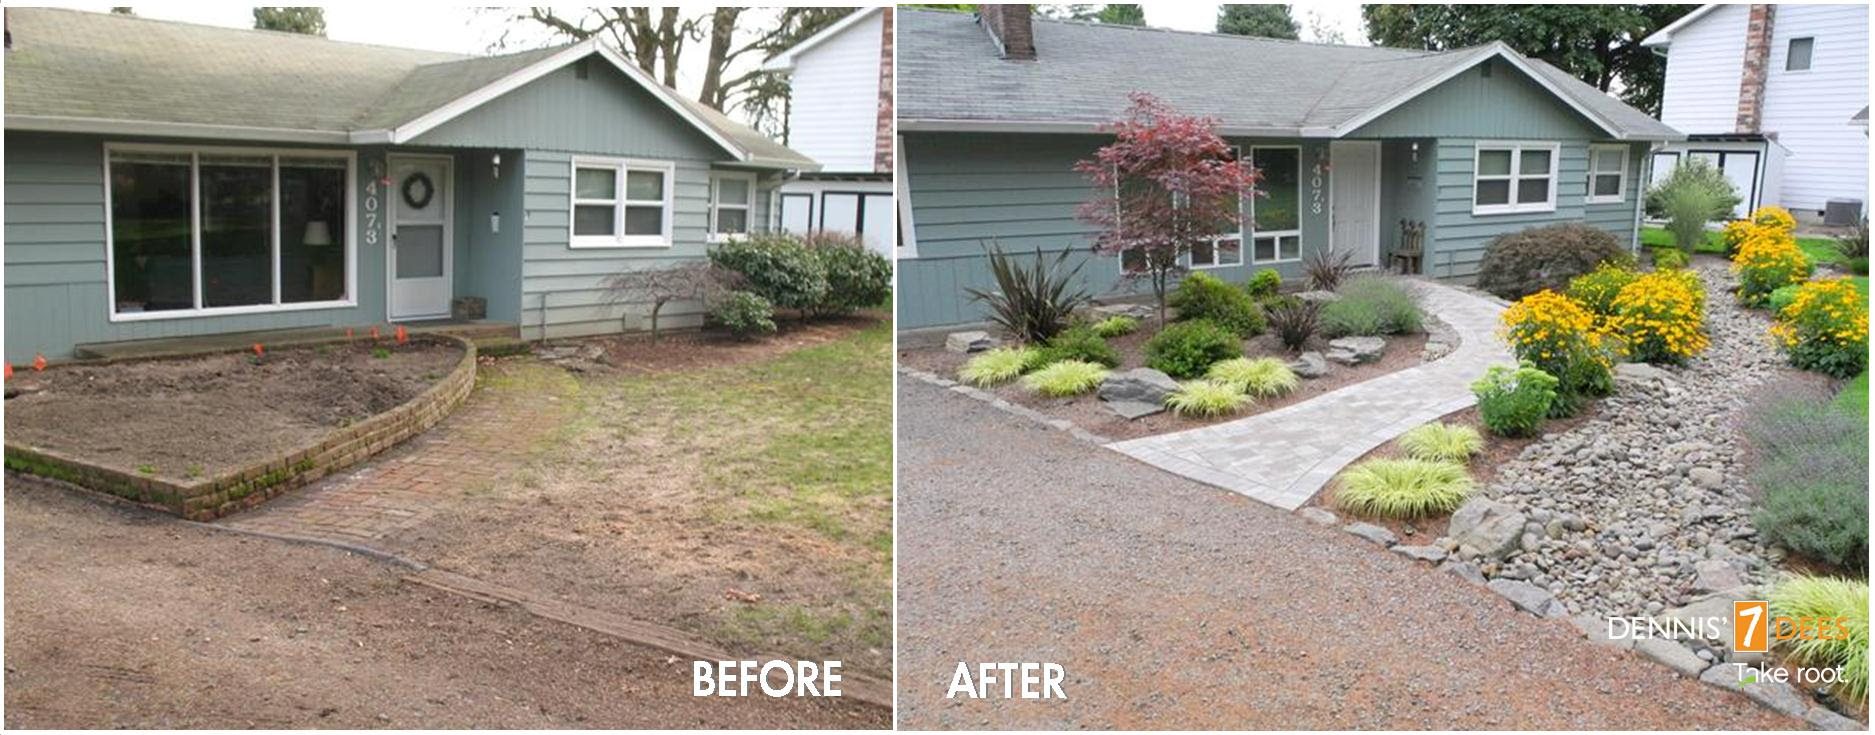 Landscaping Ideas Front Yard Pictures Before And After